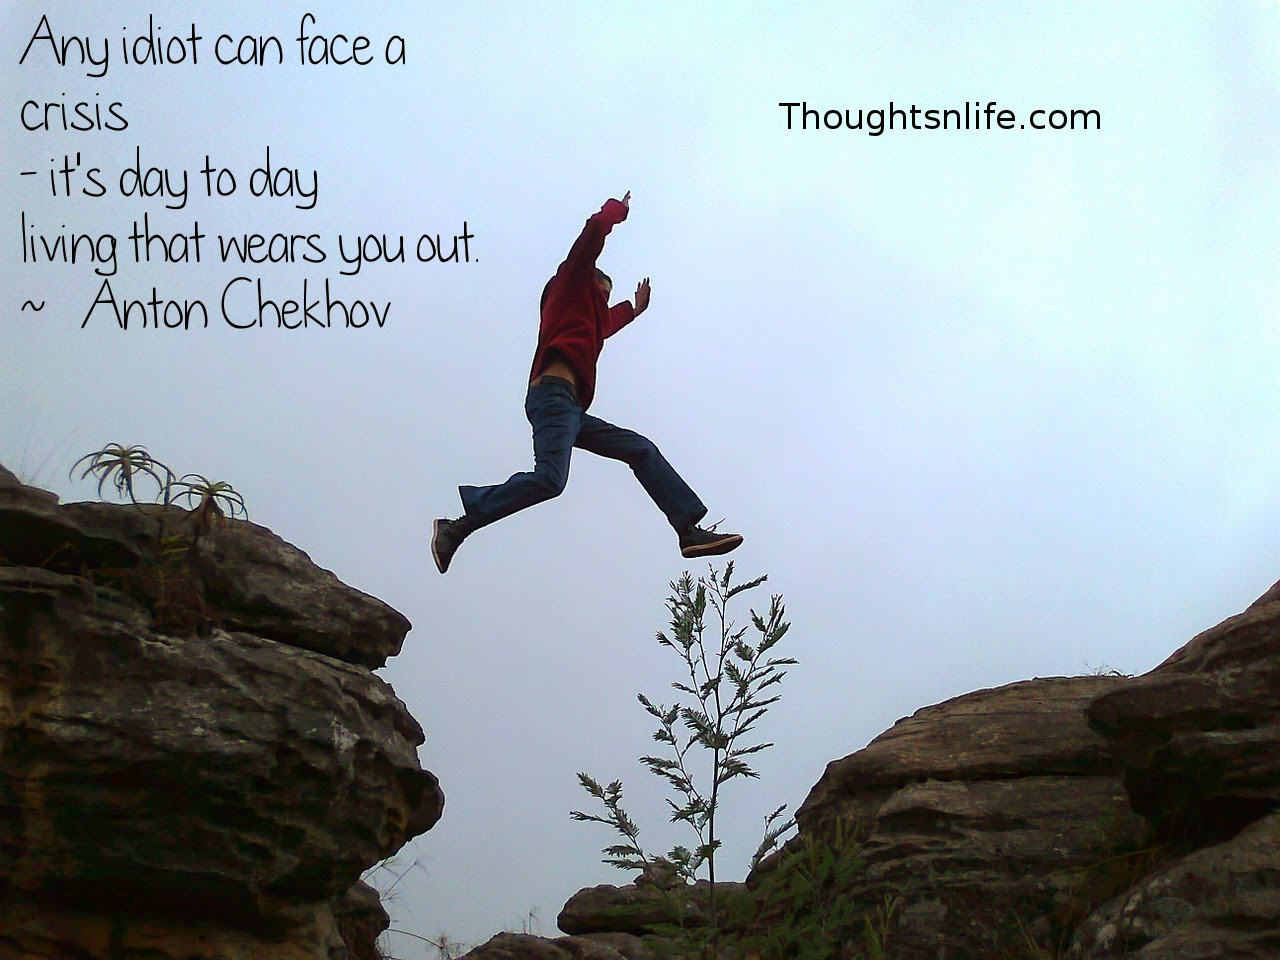 Thoughtsnlife.com: Any idiot can face a crisis - it's day to day living that wears you out. ~   Anton Chekhov